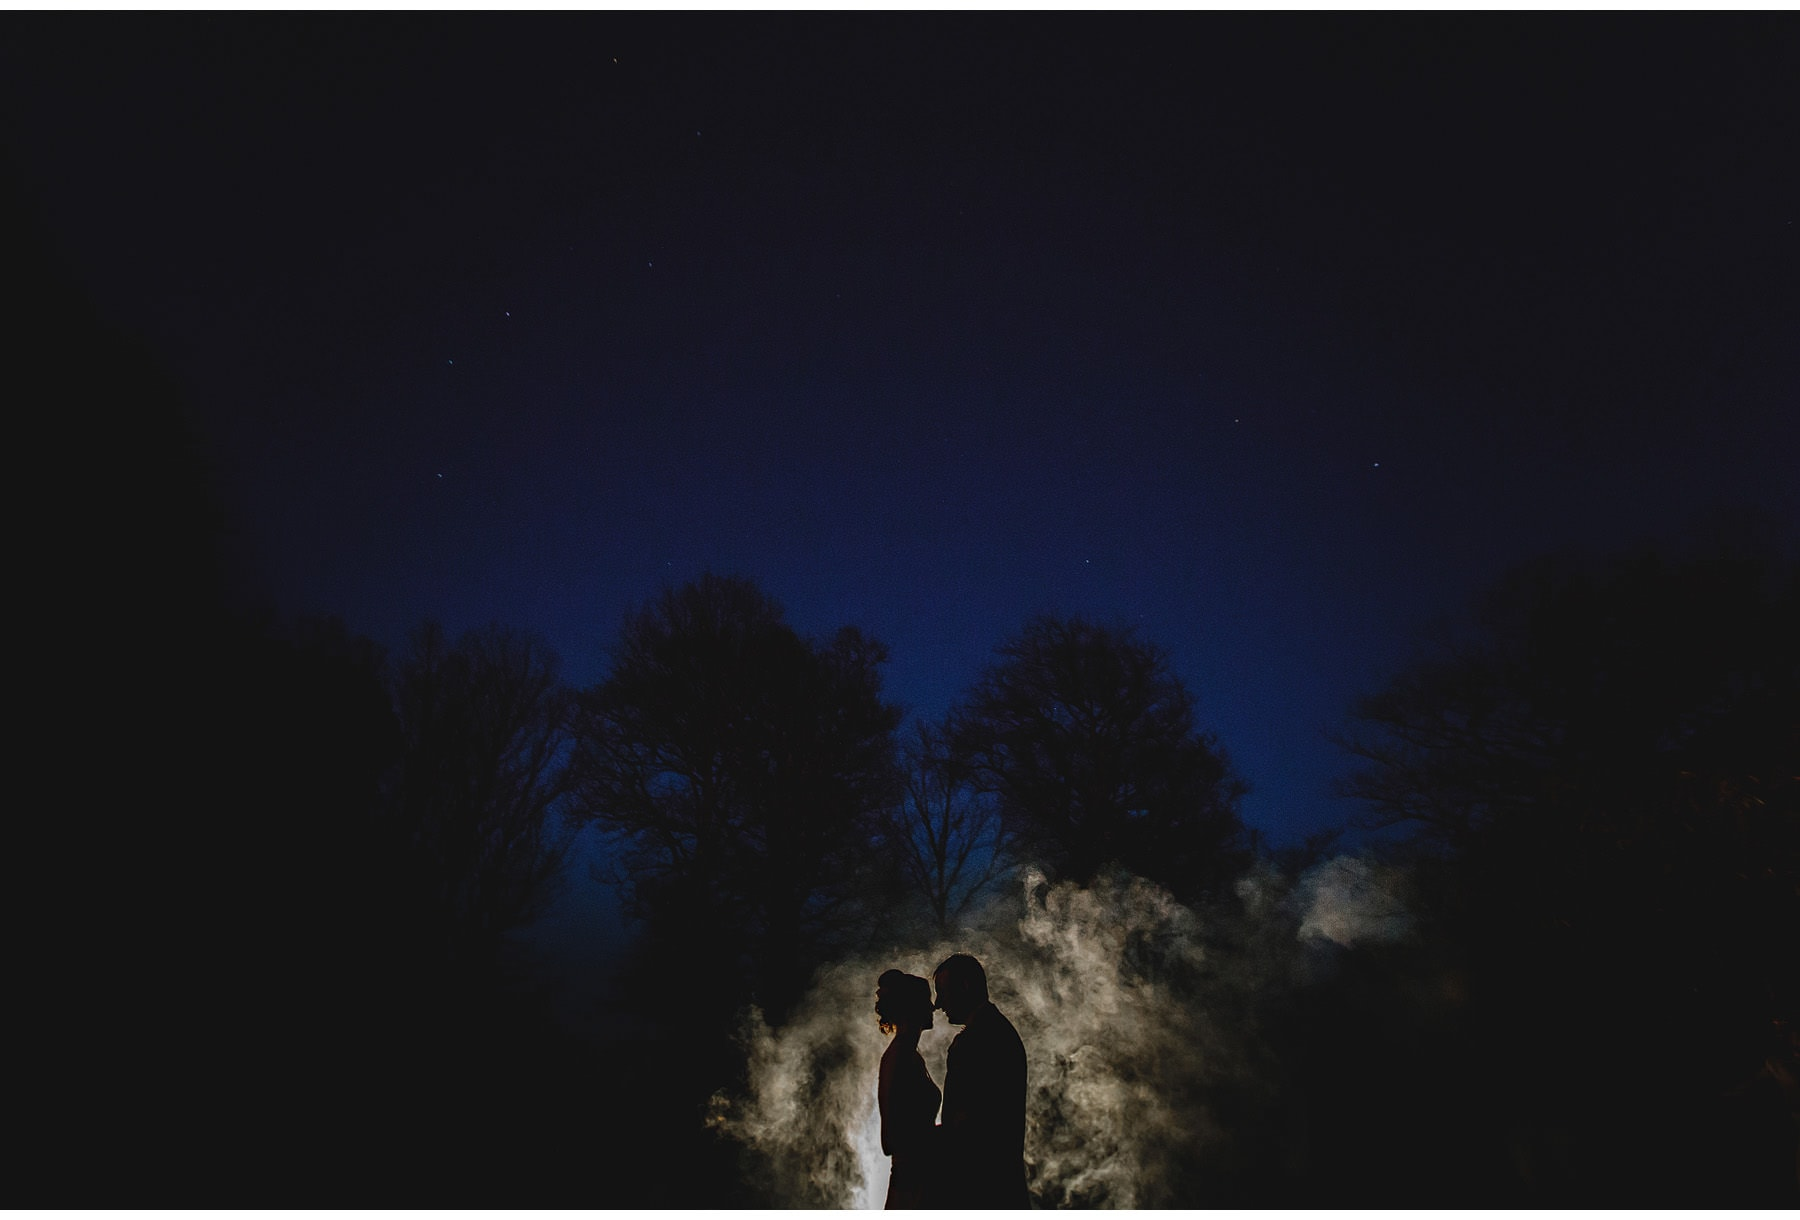 The bride & groom in silhouette against the mist